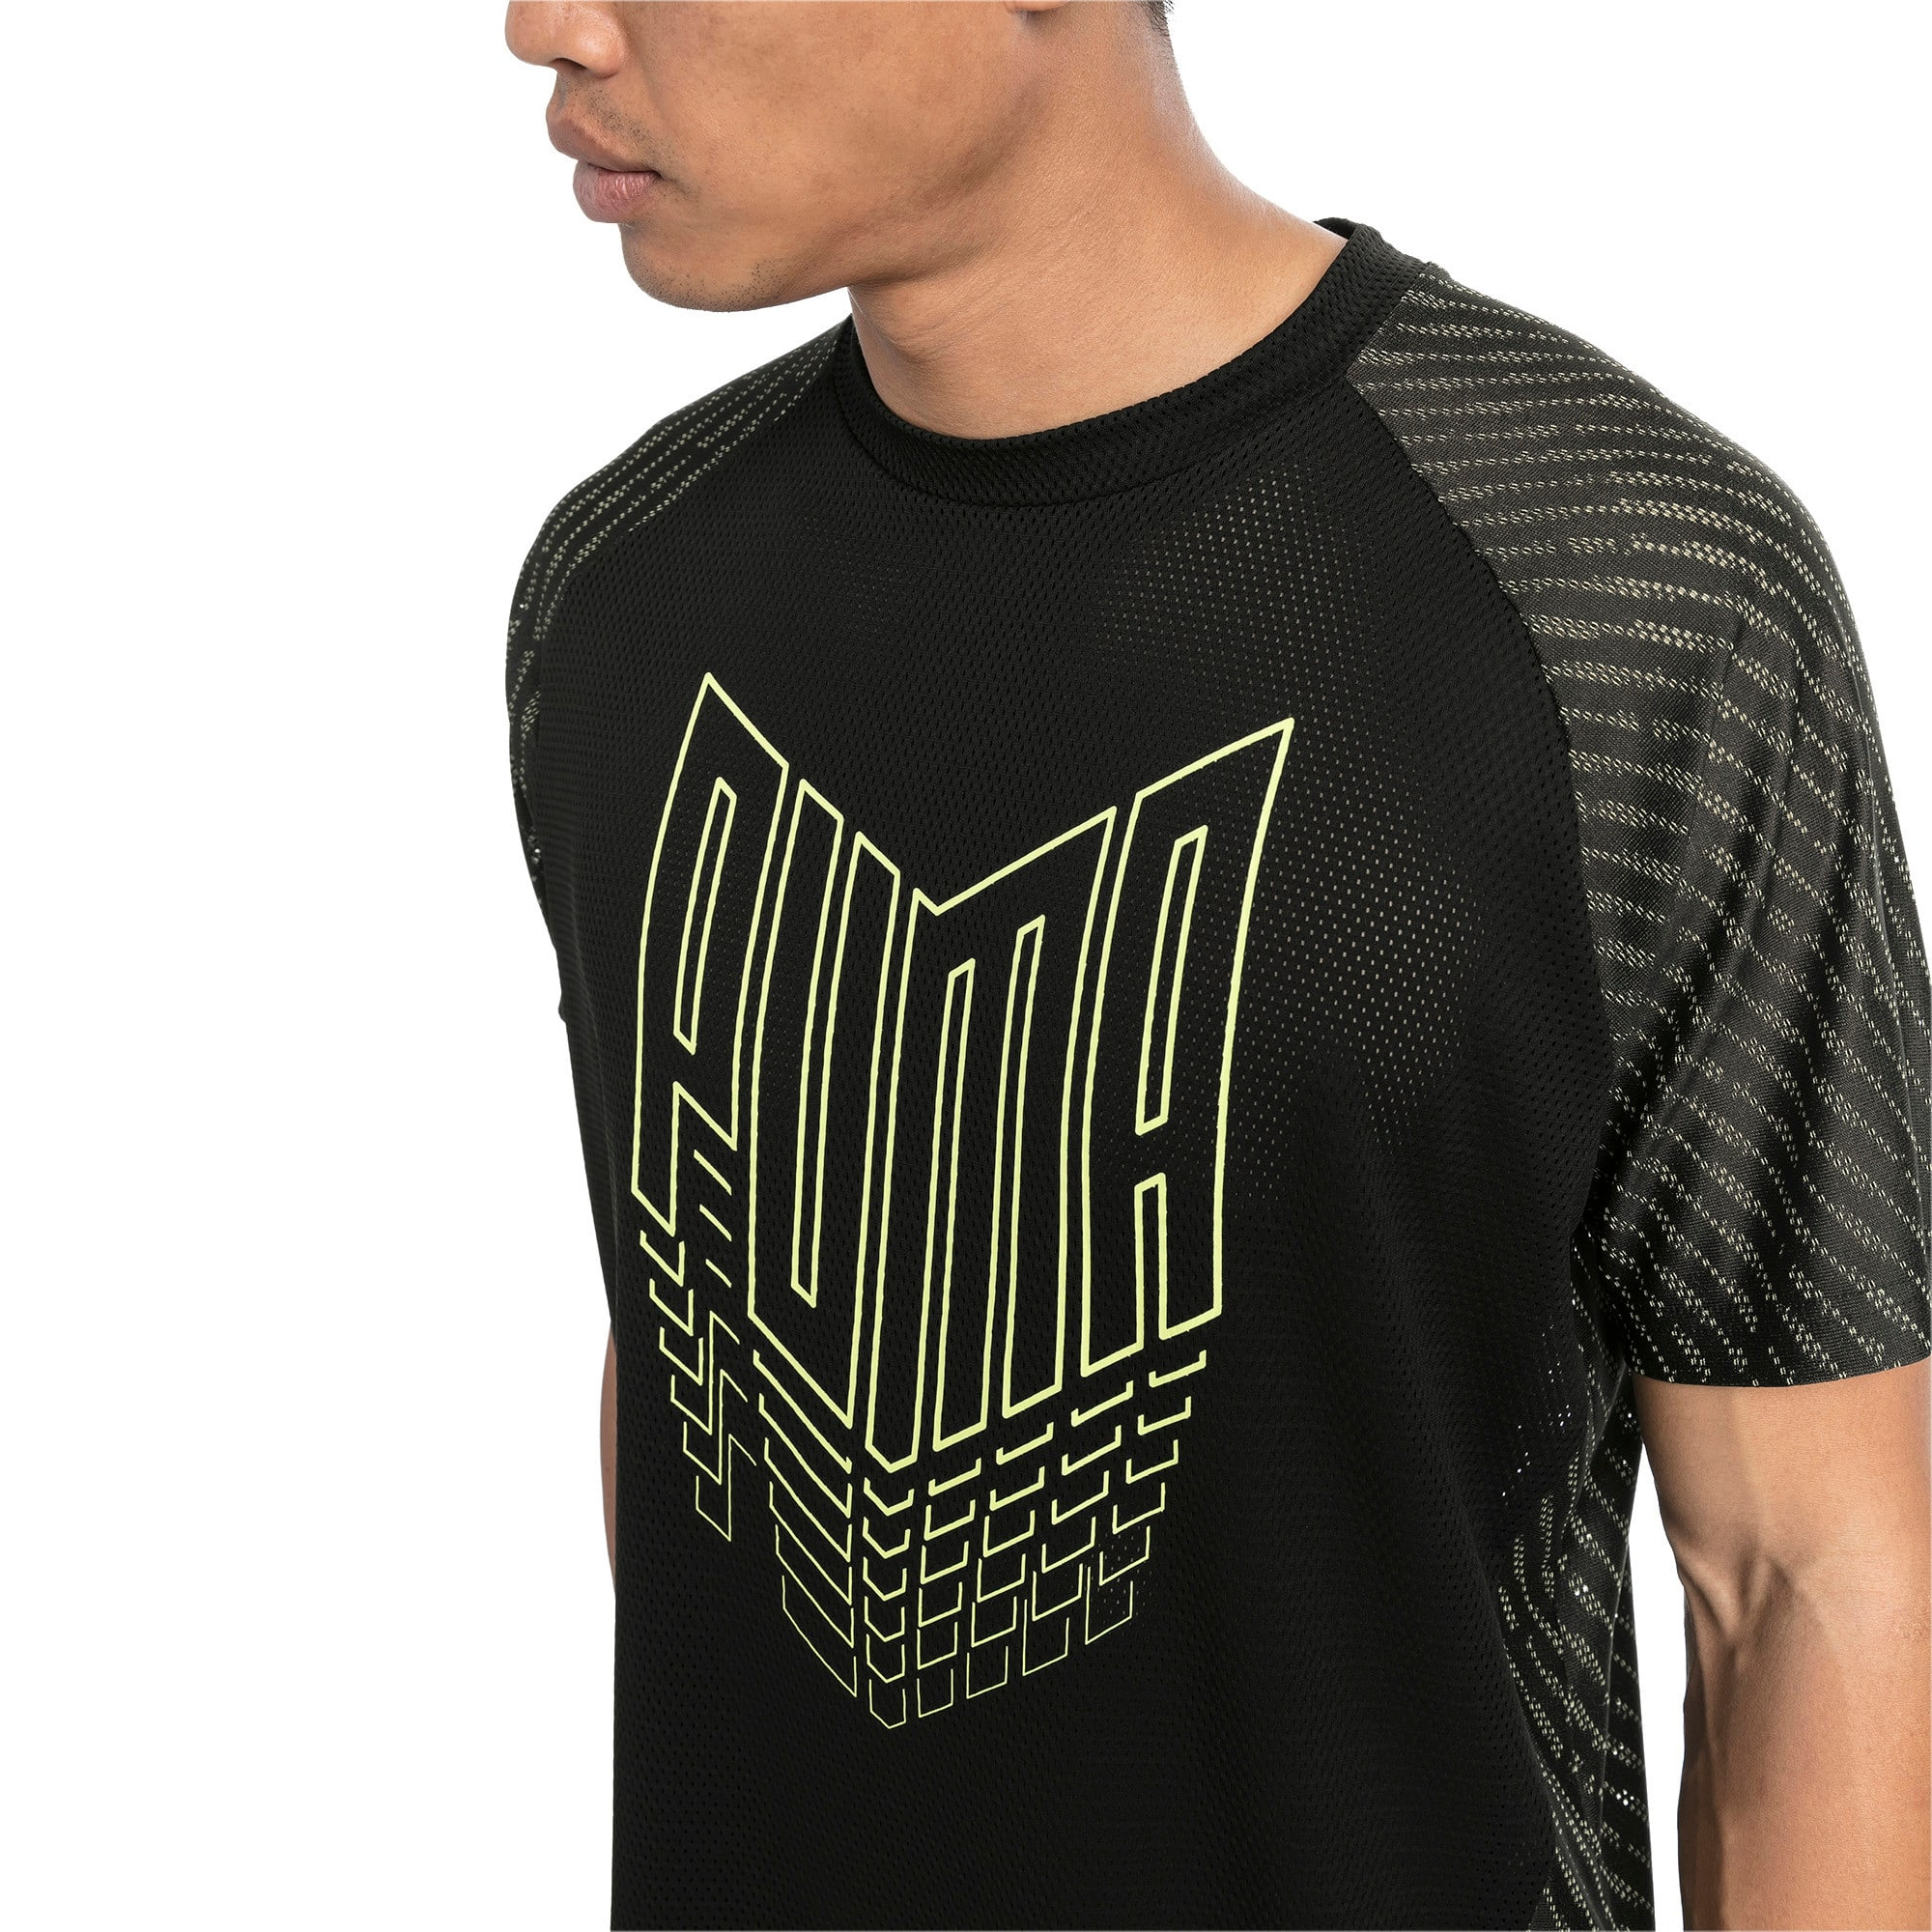 Thumbnail 1 of VENT Men's Training Tee, Puma Black, medium